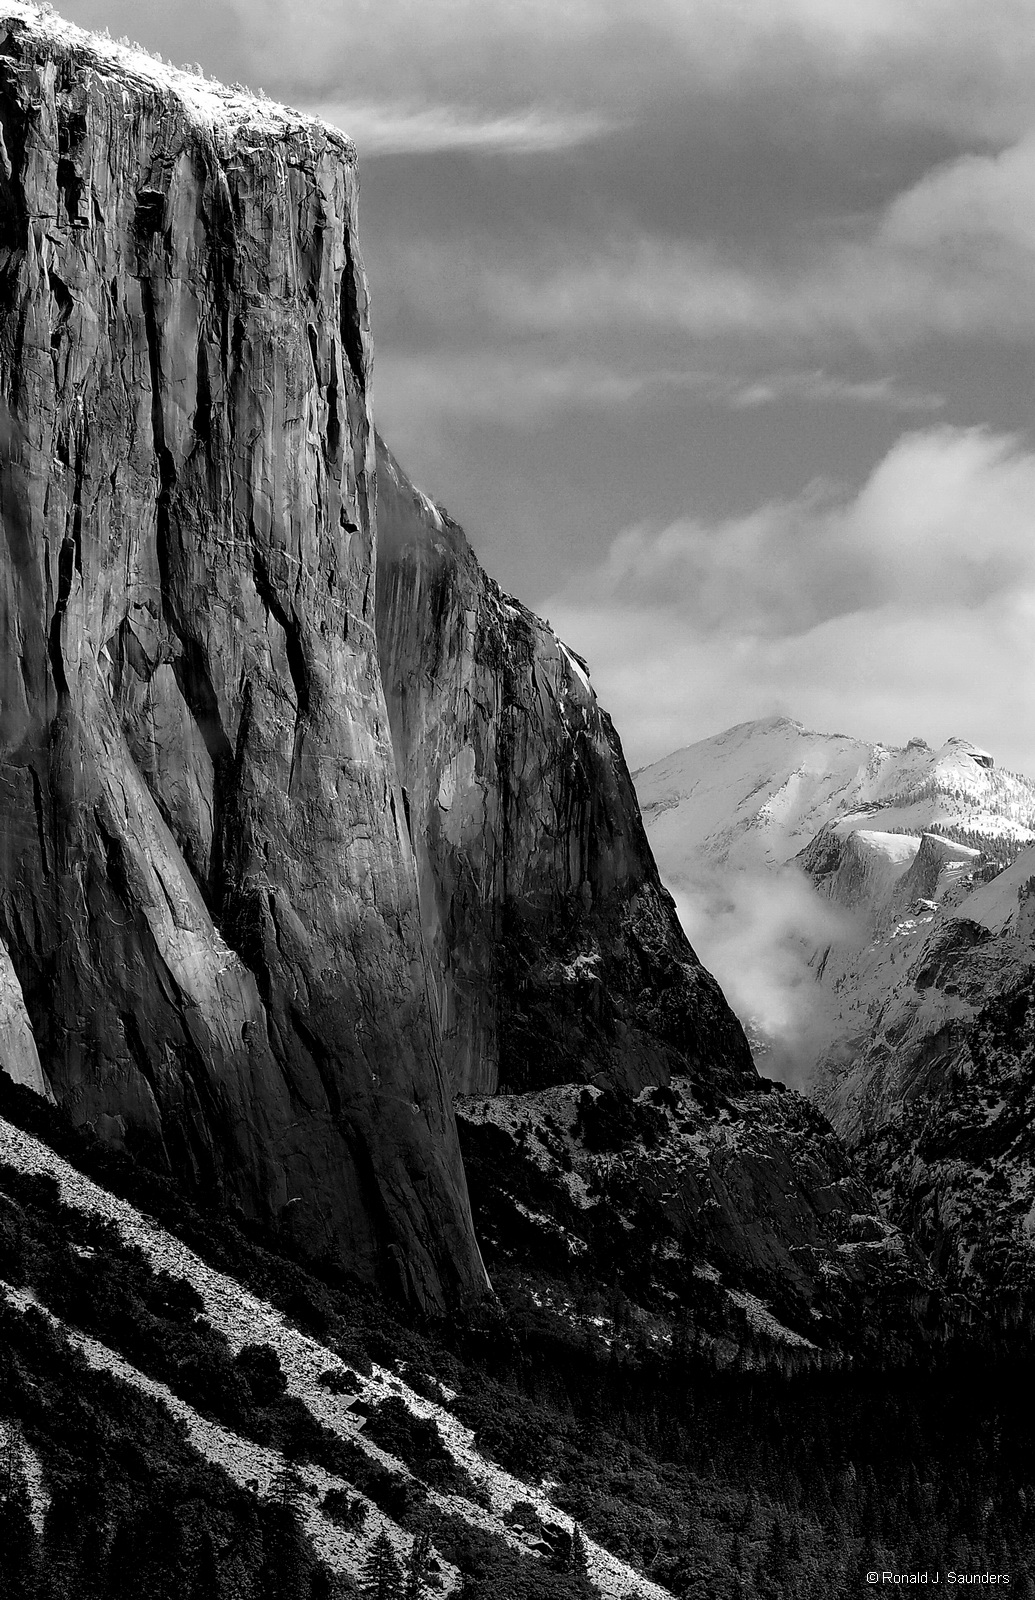 yosemite, el capitan, clouds, B&W, landscape, HDR, photo